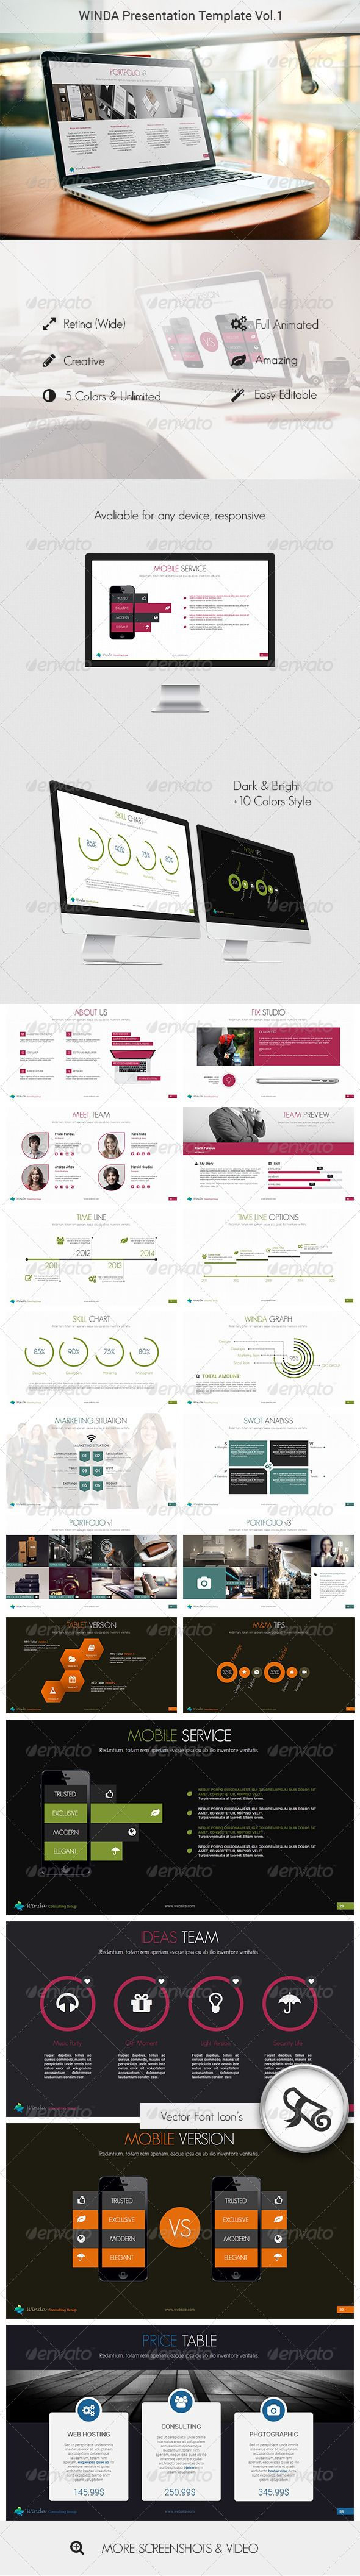 1x1.trans Winda Creative Powerpoint Template (Powerpoint Templates)